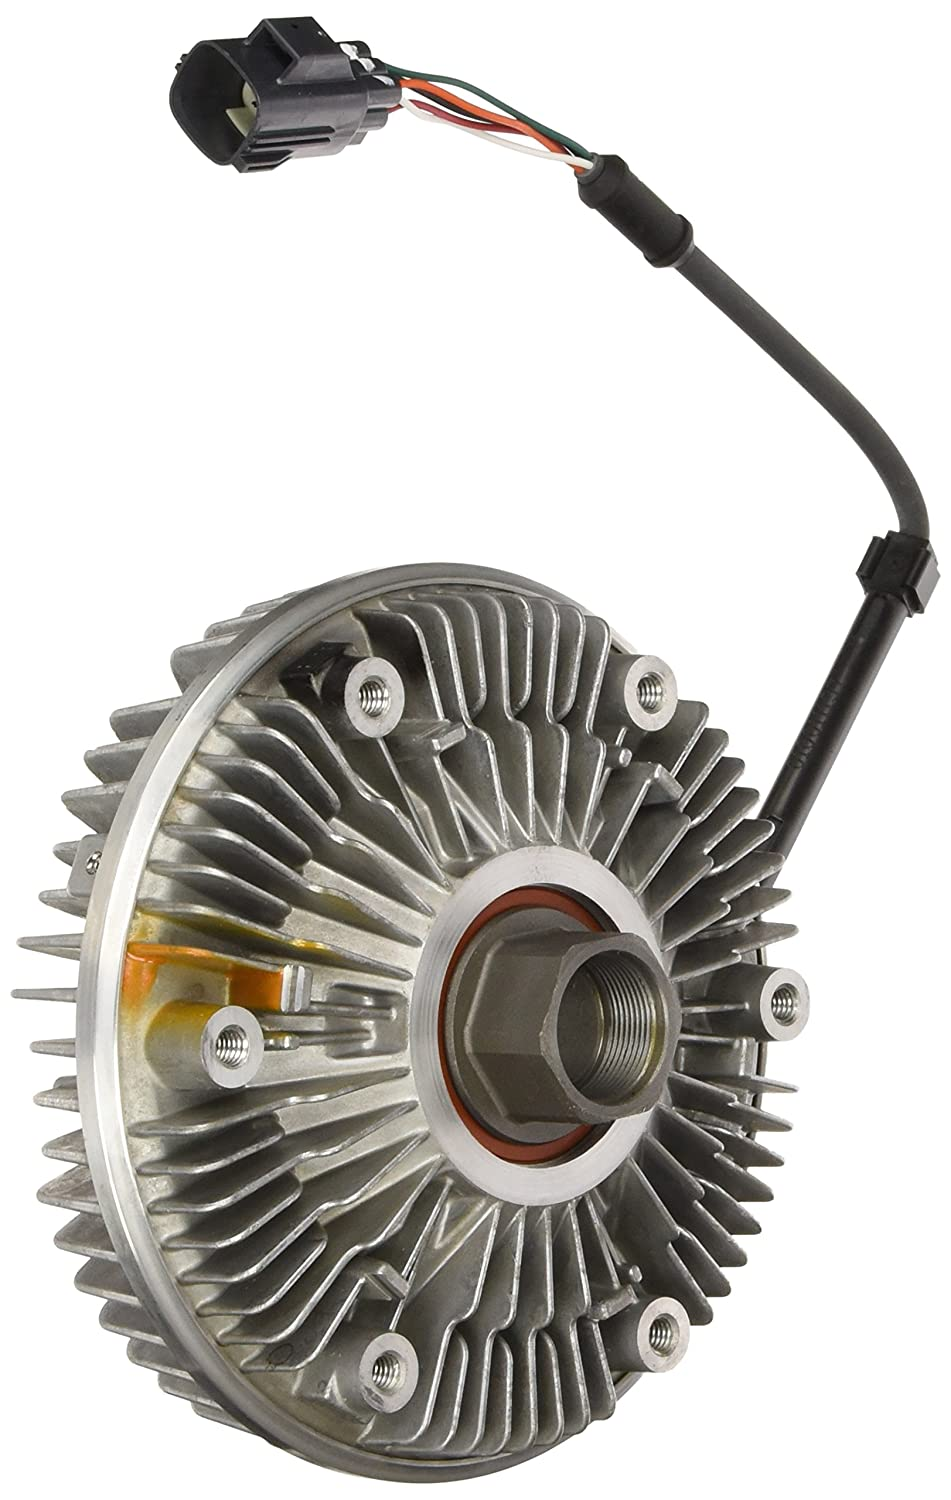 Four Seasons 46059 Cooling Fan Clutch